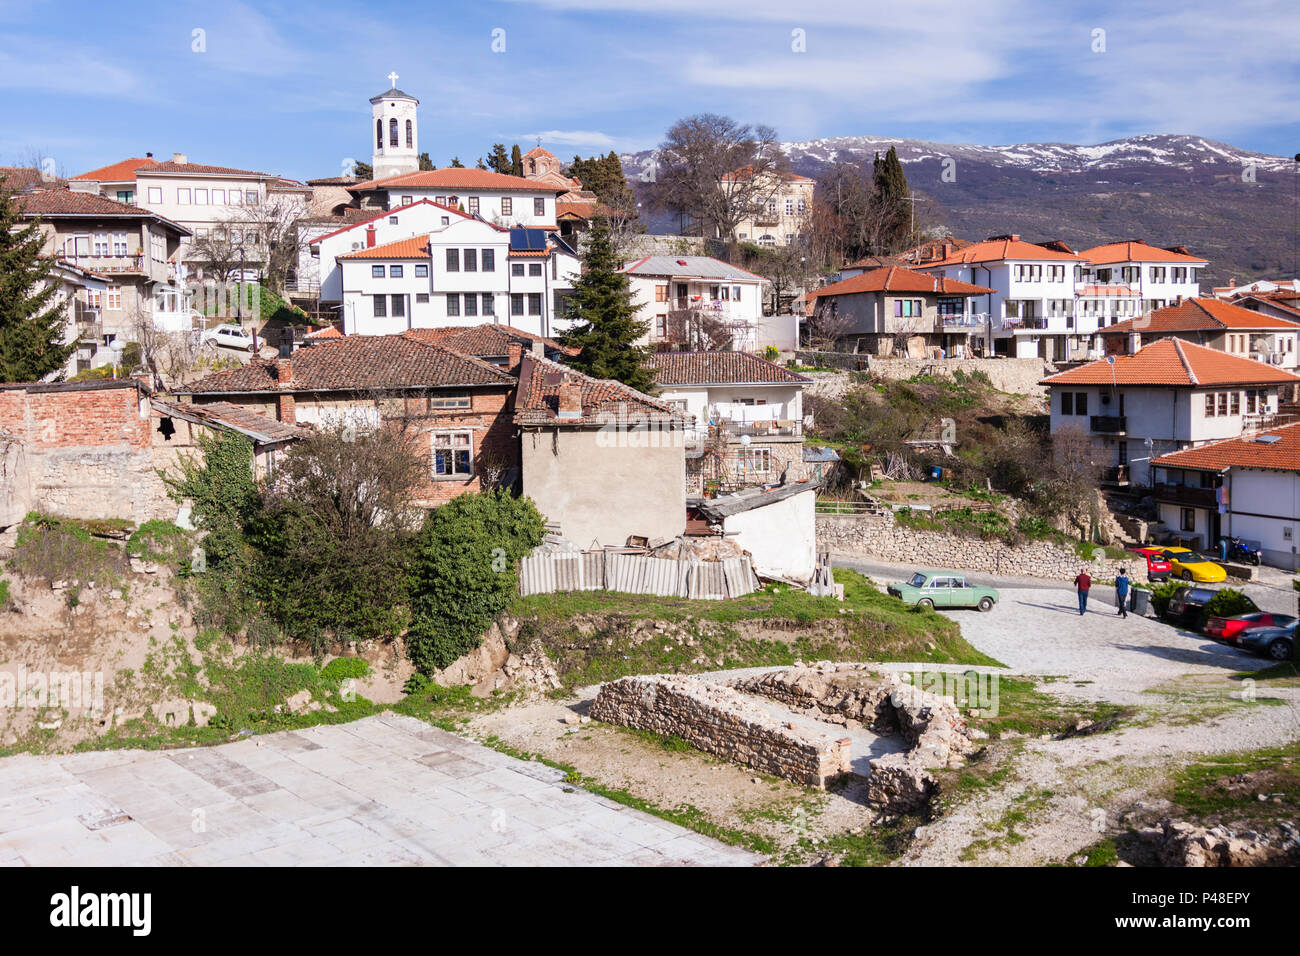 Ohrid, Republic of Macedonia : Overview of the Unesco listed old town of Ohrid. Stock Photo